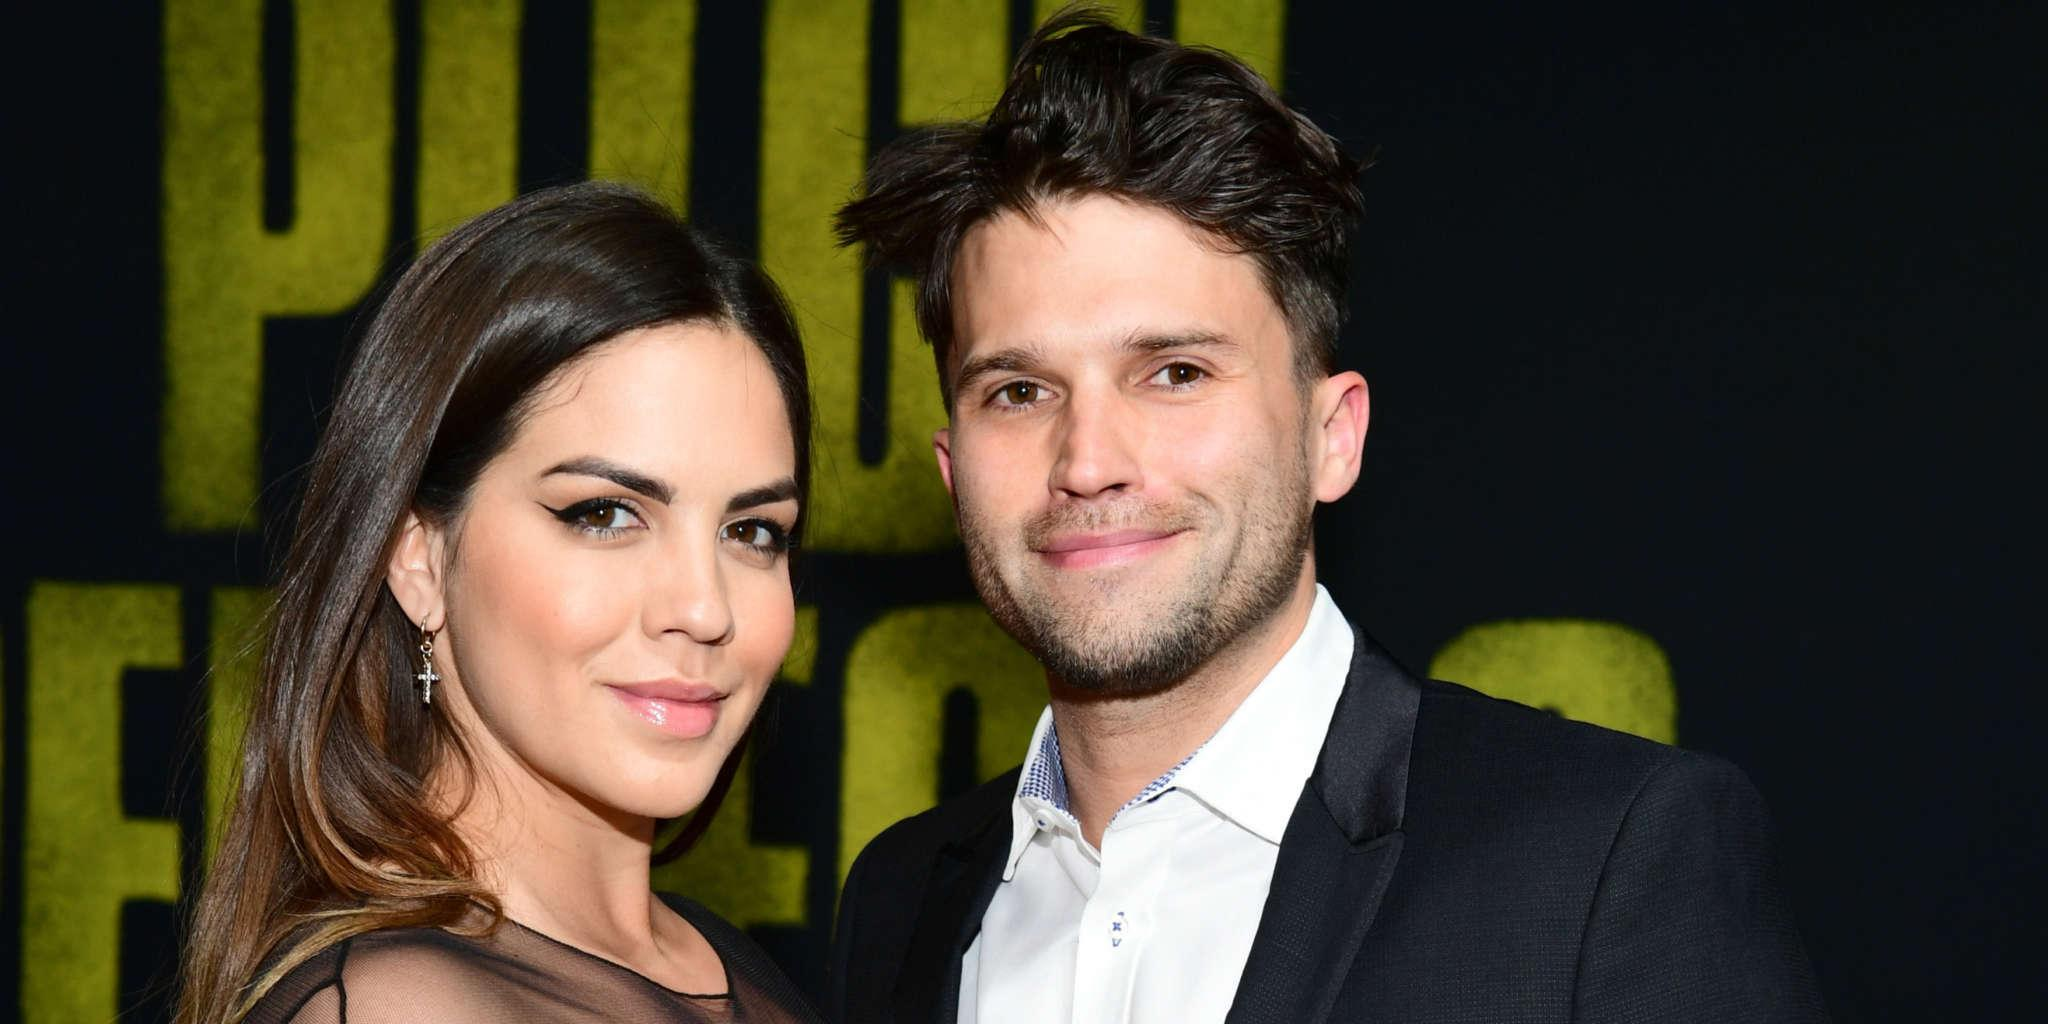 Tom Schwartz And Katie Maloney - Inside Their Baby Plans And More!